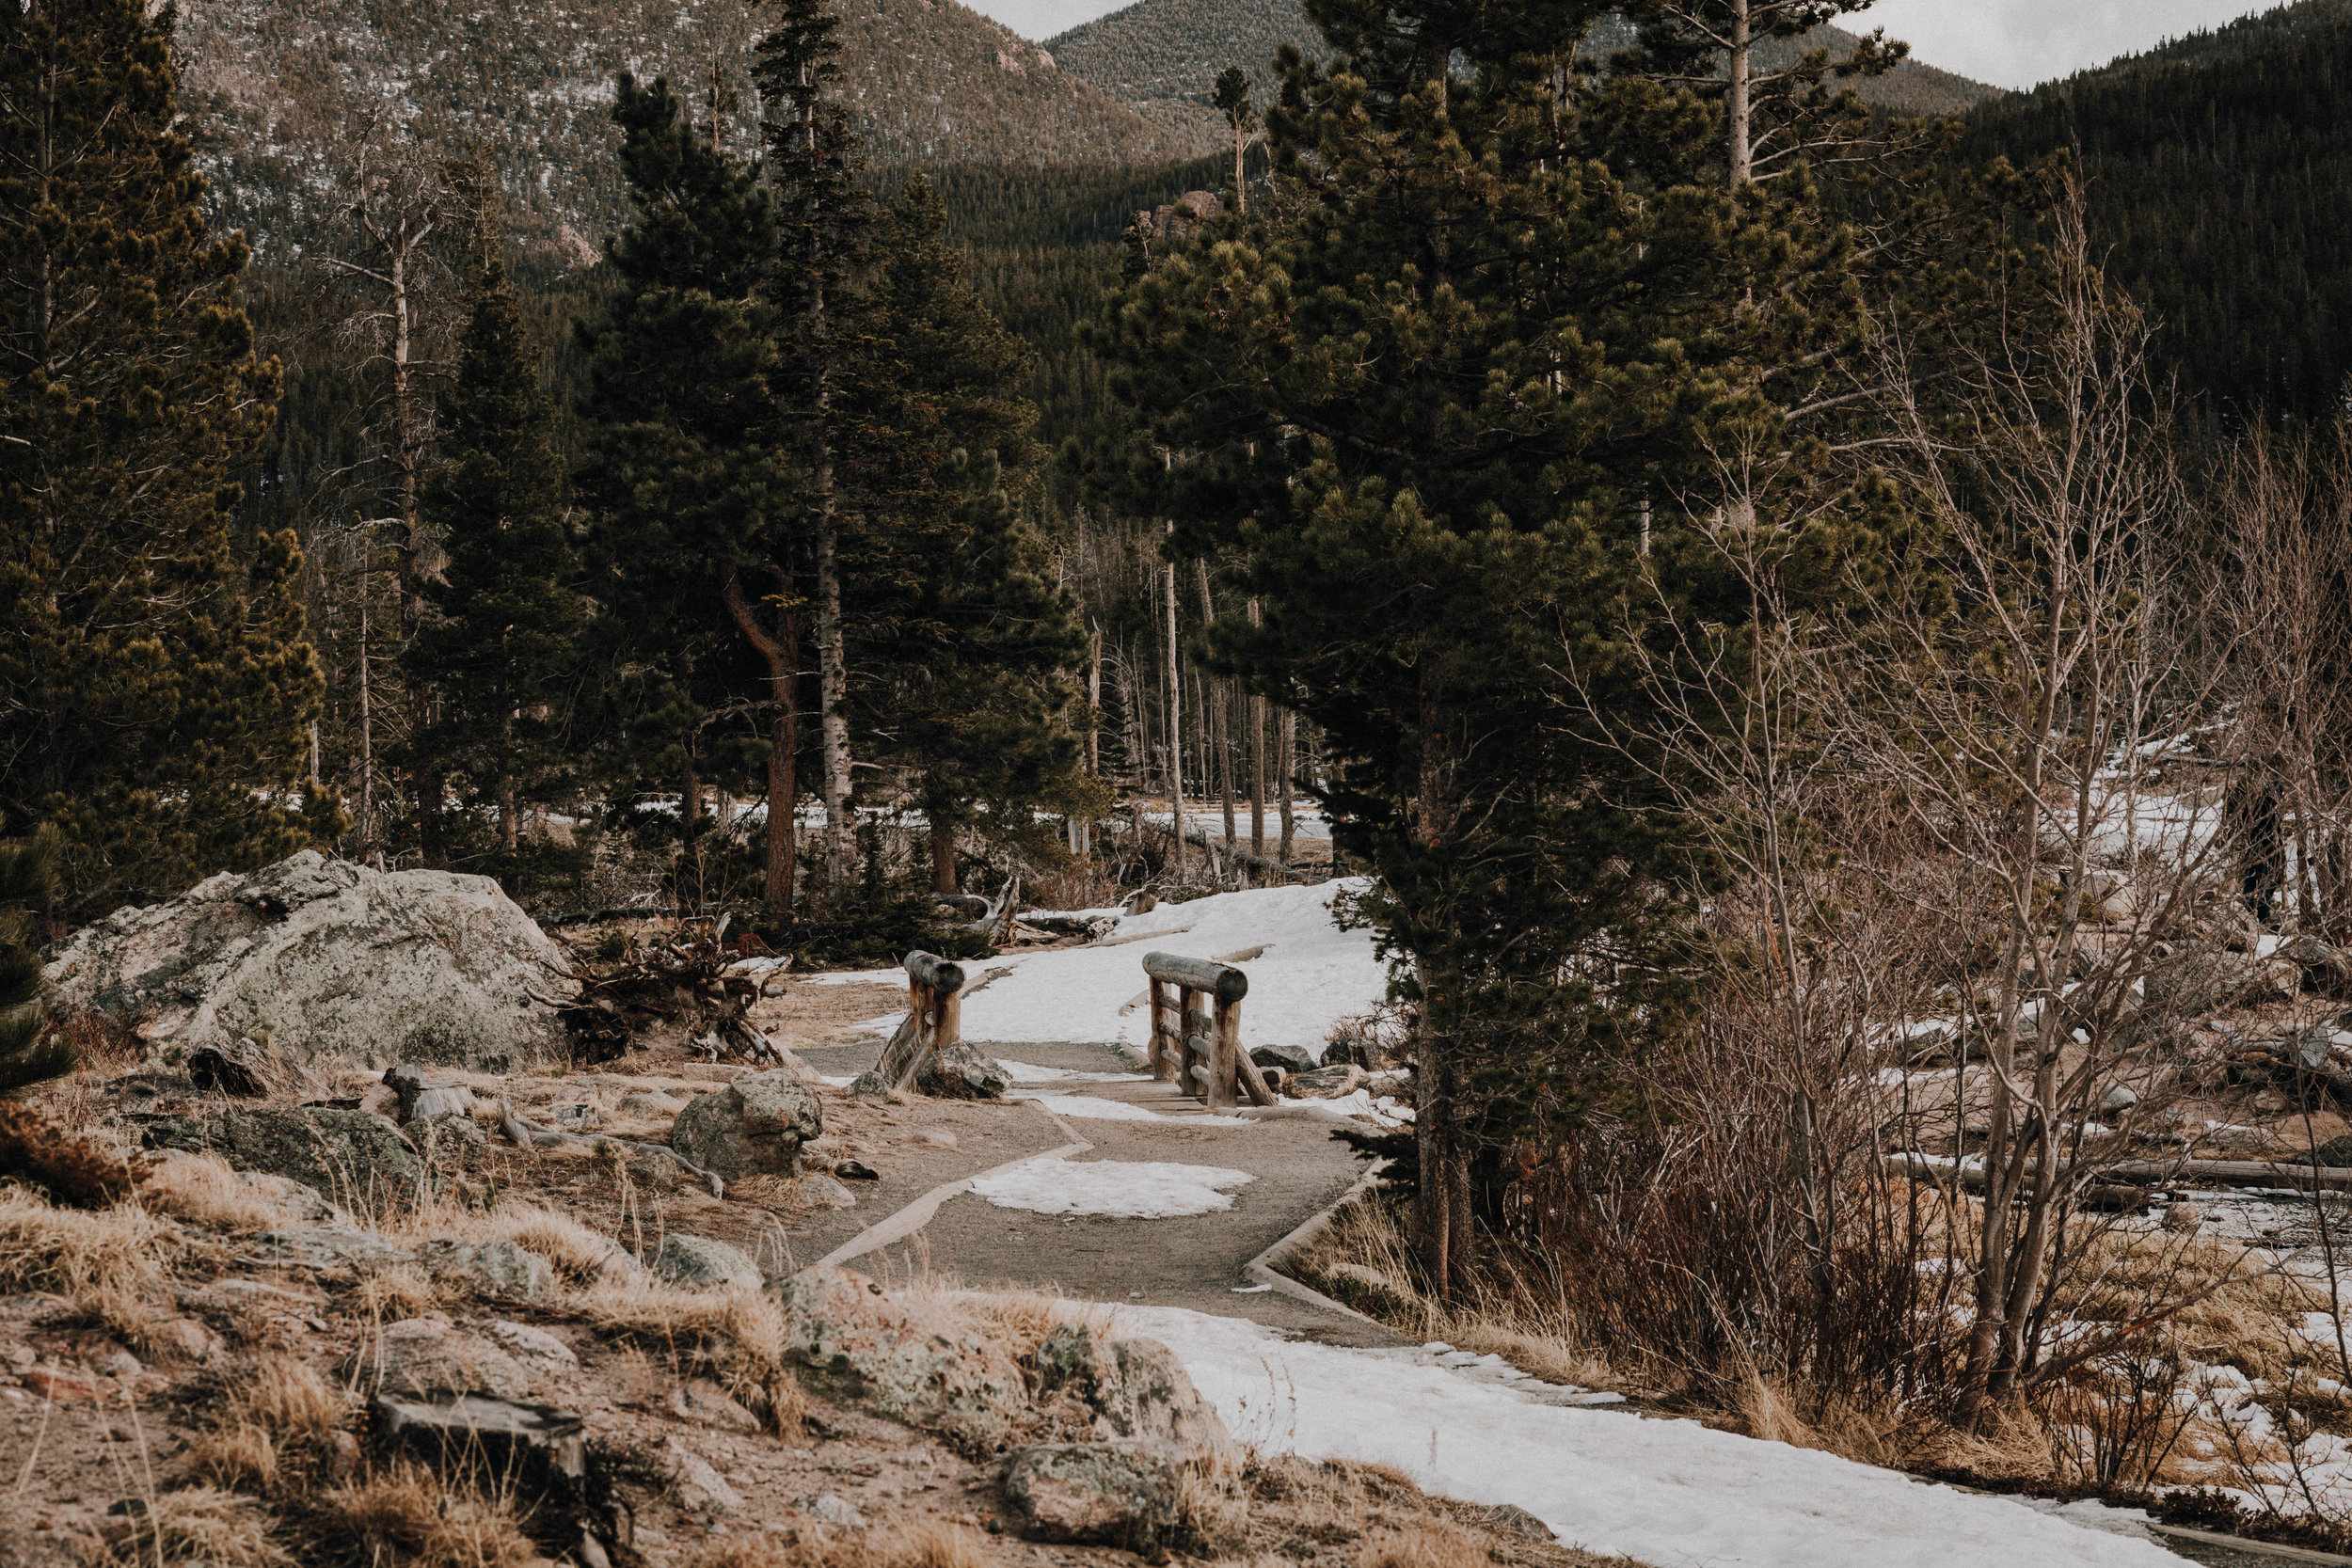 Sheena_Shahangian_Photography_Lifestyle_and_Travel_Photo_Shoot_Rocky_Mountain_National_Park-13.jpg